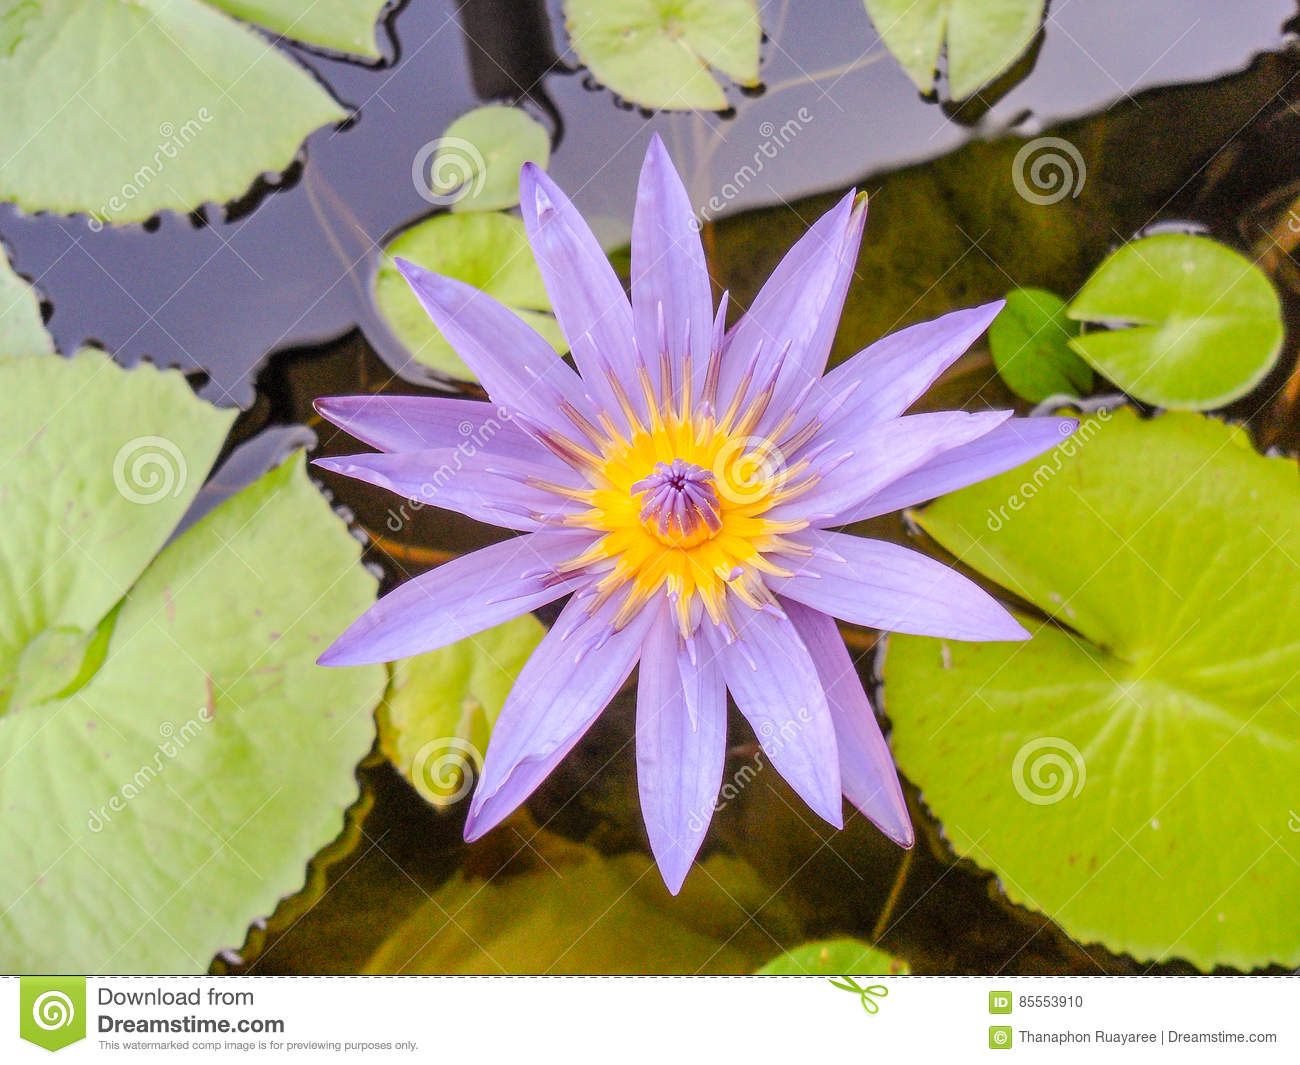 Lotus flower for buddhism stock photo image of bloom 85553910 download lotus flower for buddhism stock photo image of bloom 85553910 mightylinksfo